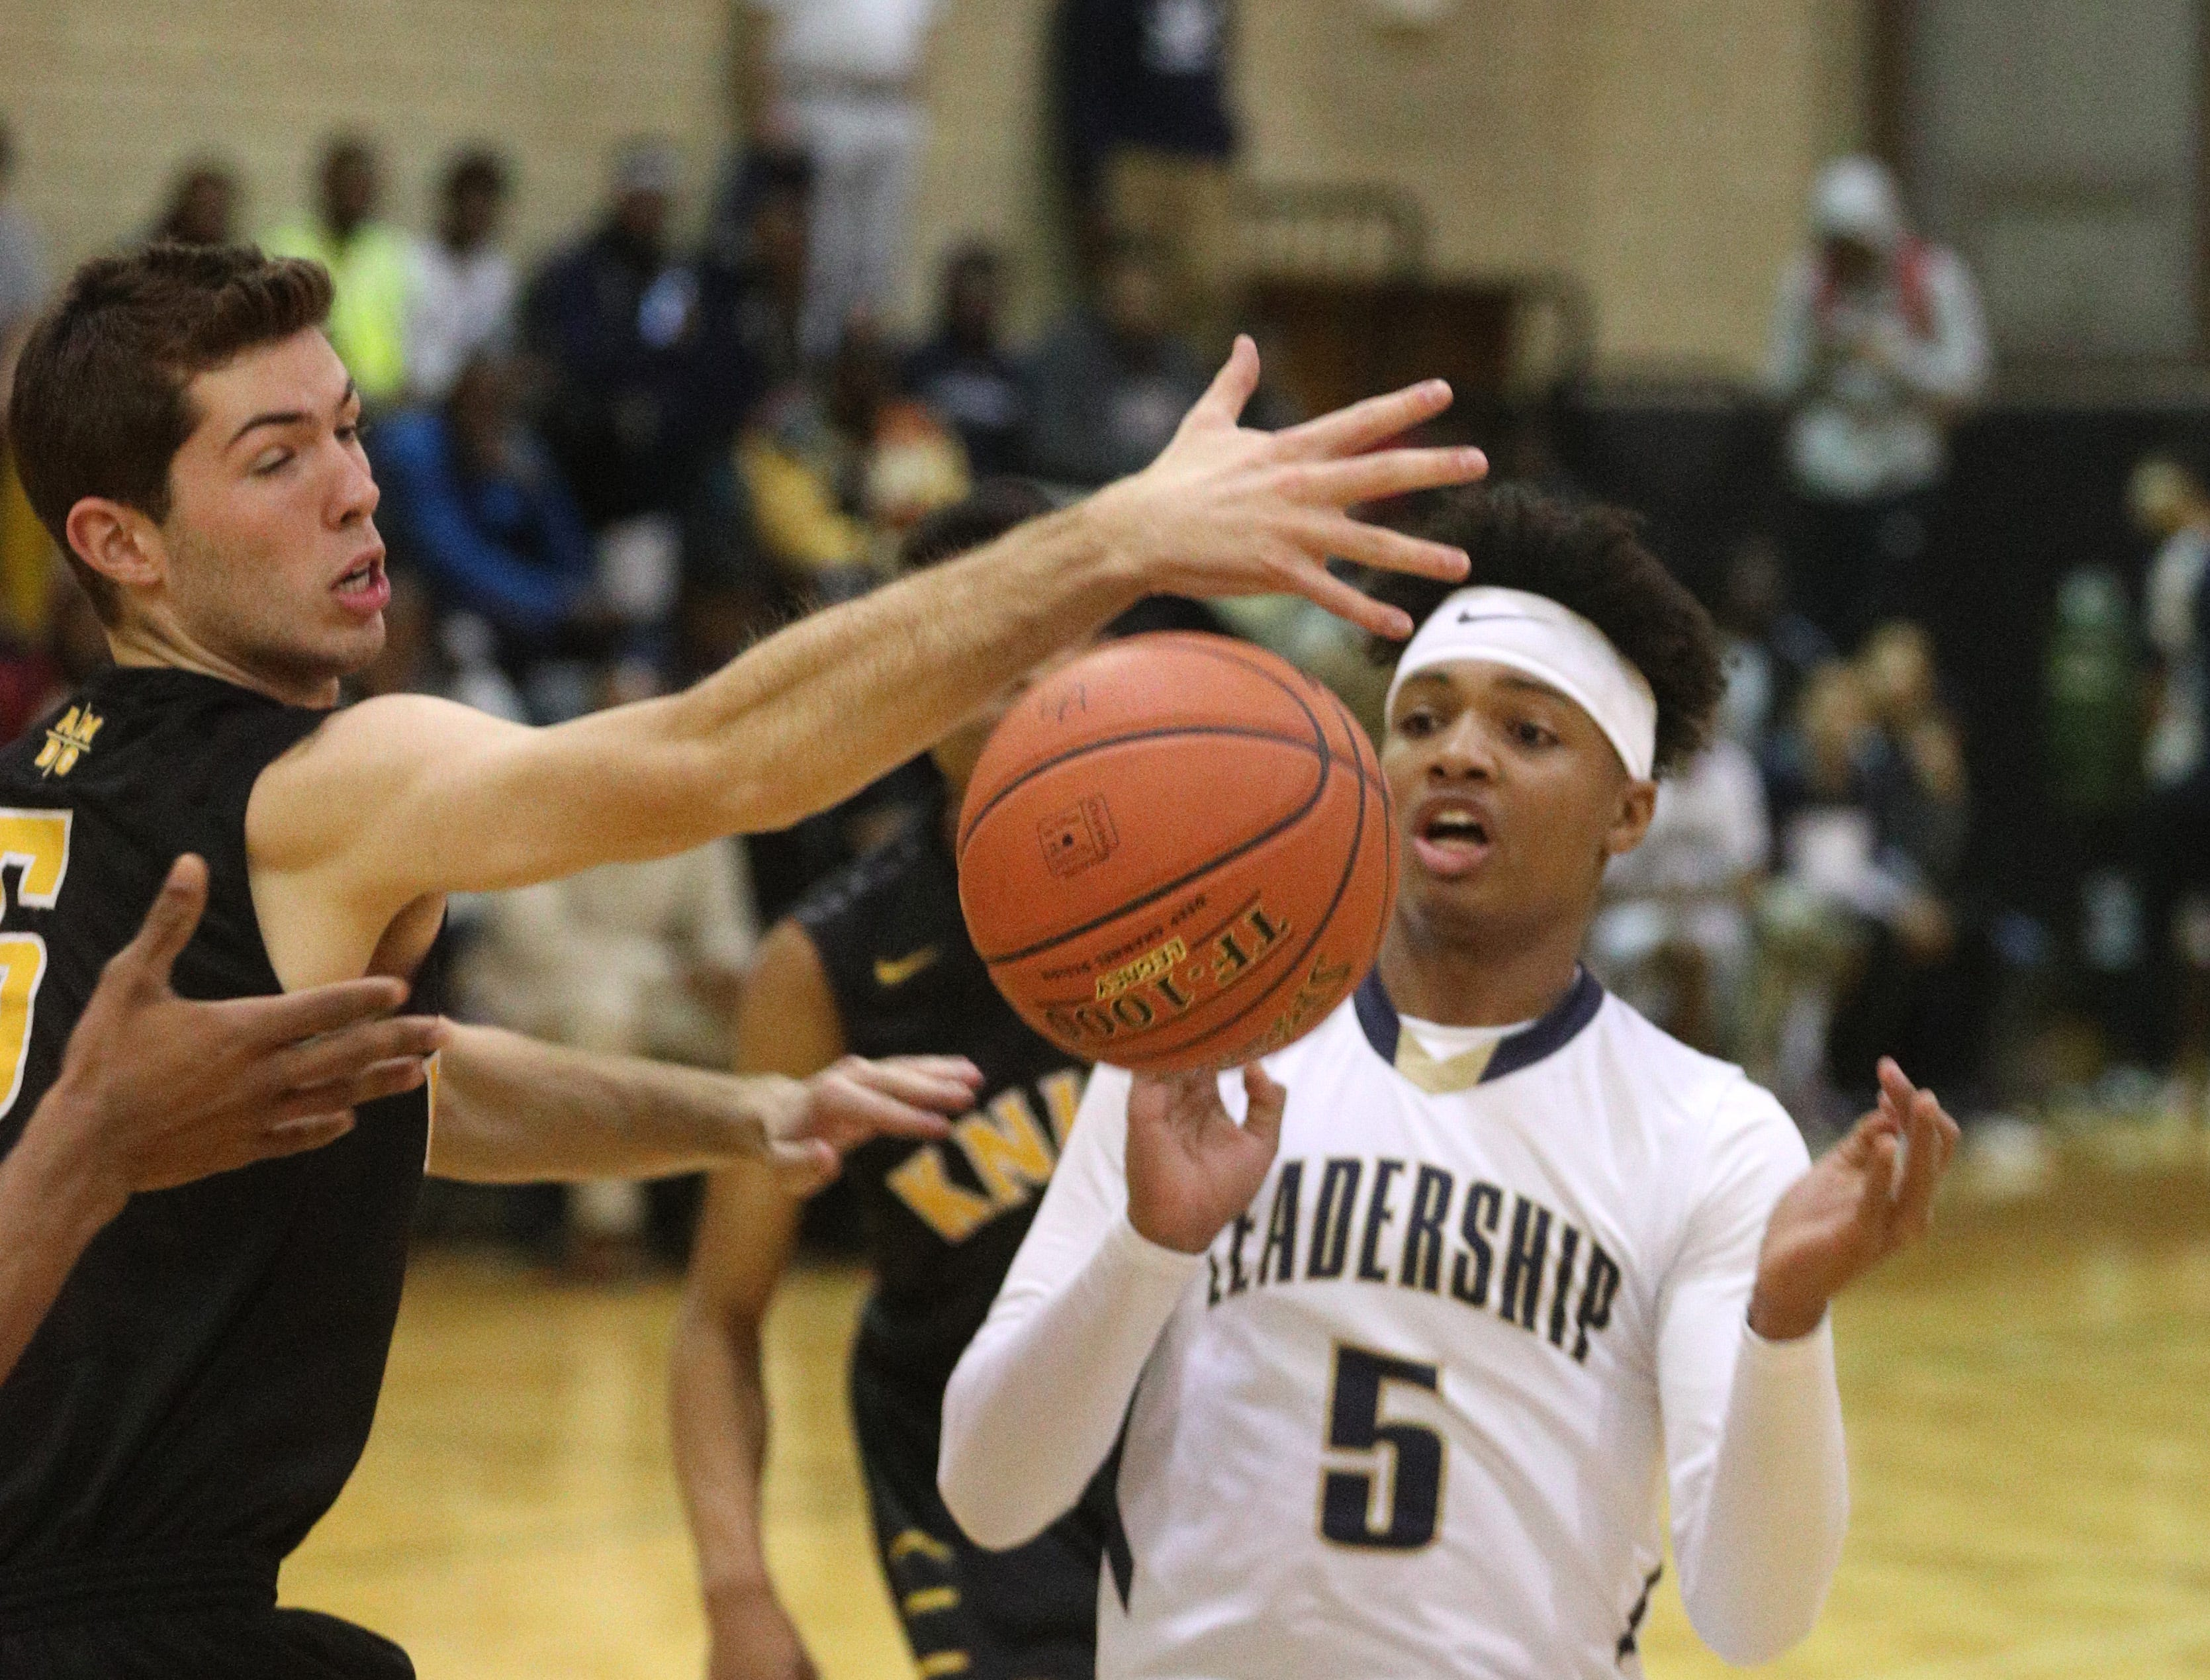 Leadership's Maurice McKinney and McQuaid's Michael Maloney try to control a rebound.